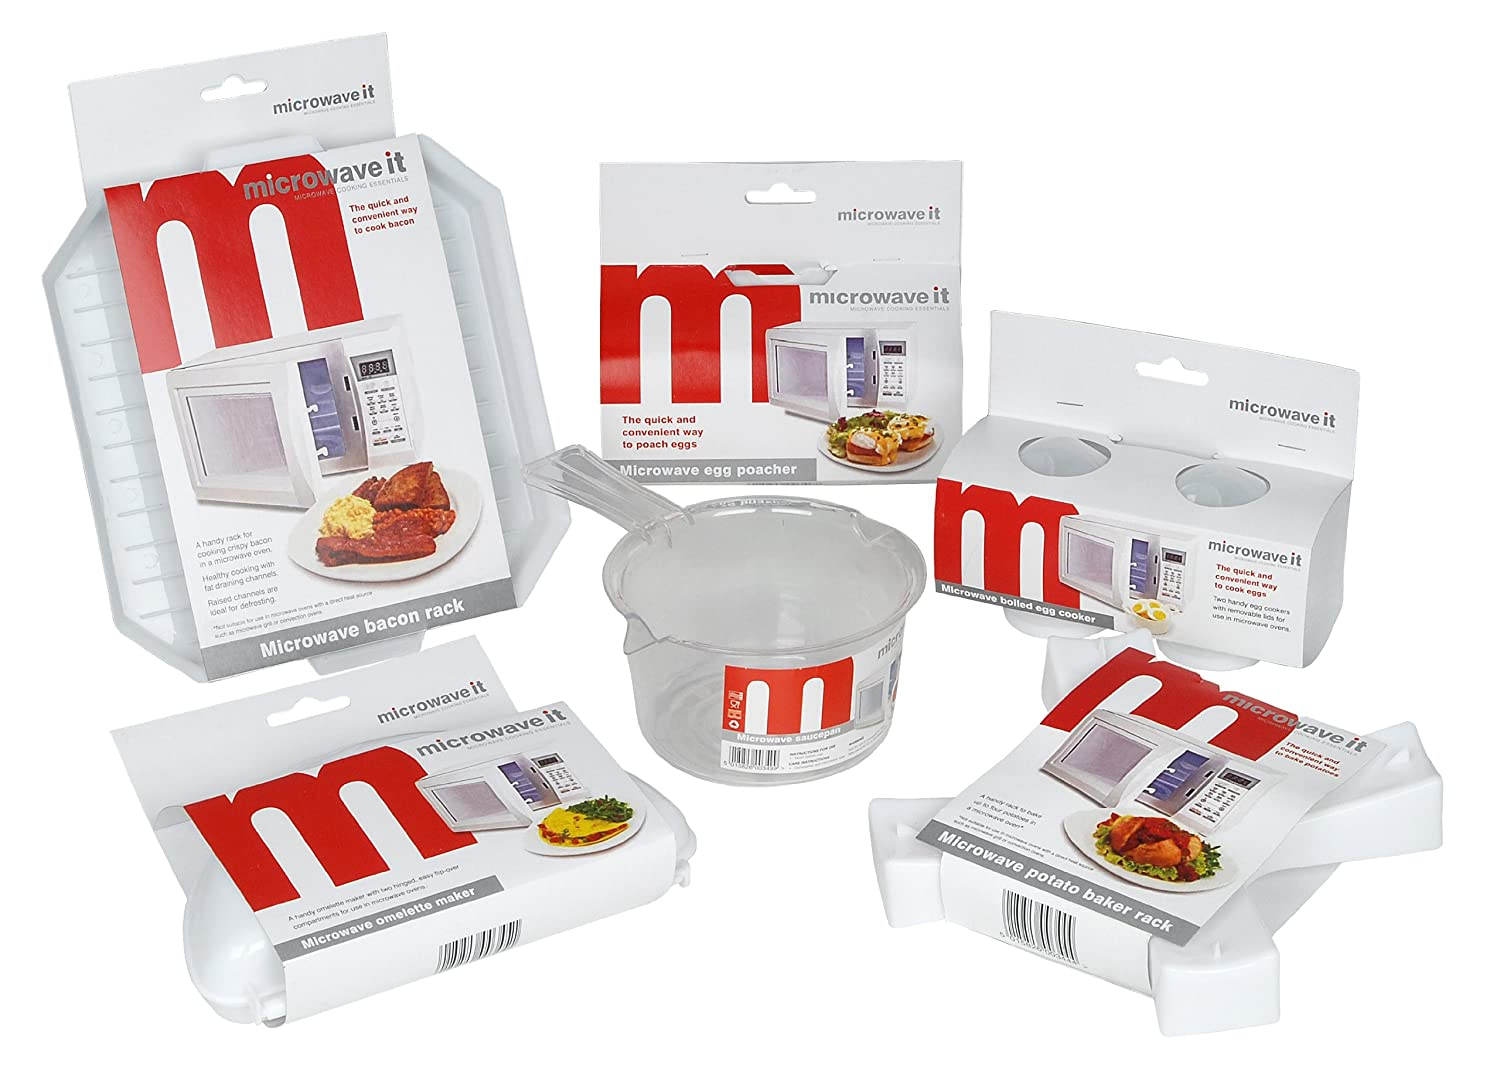 Microwave it 6 Piece Microwave Cookware Set Pendeford PP3550